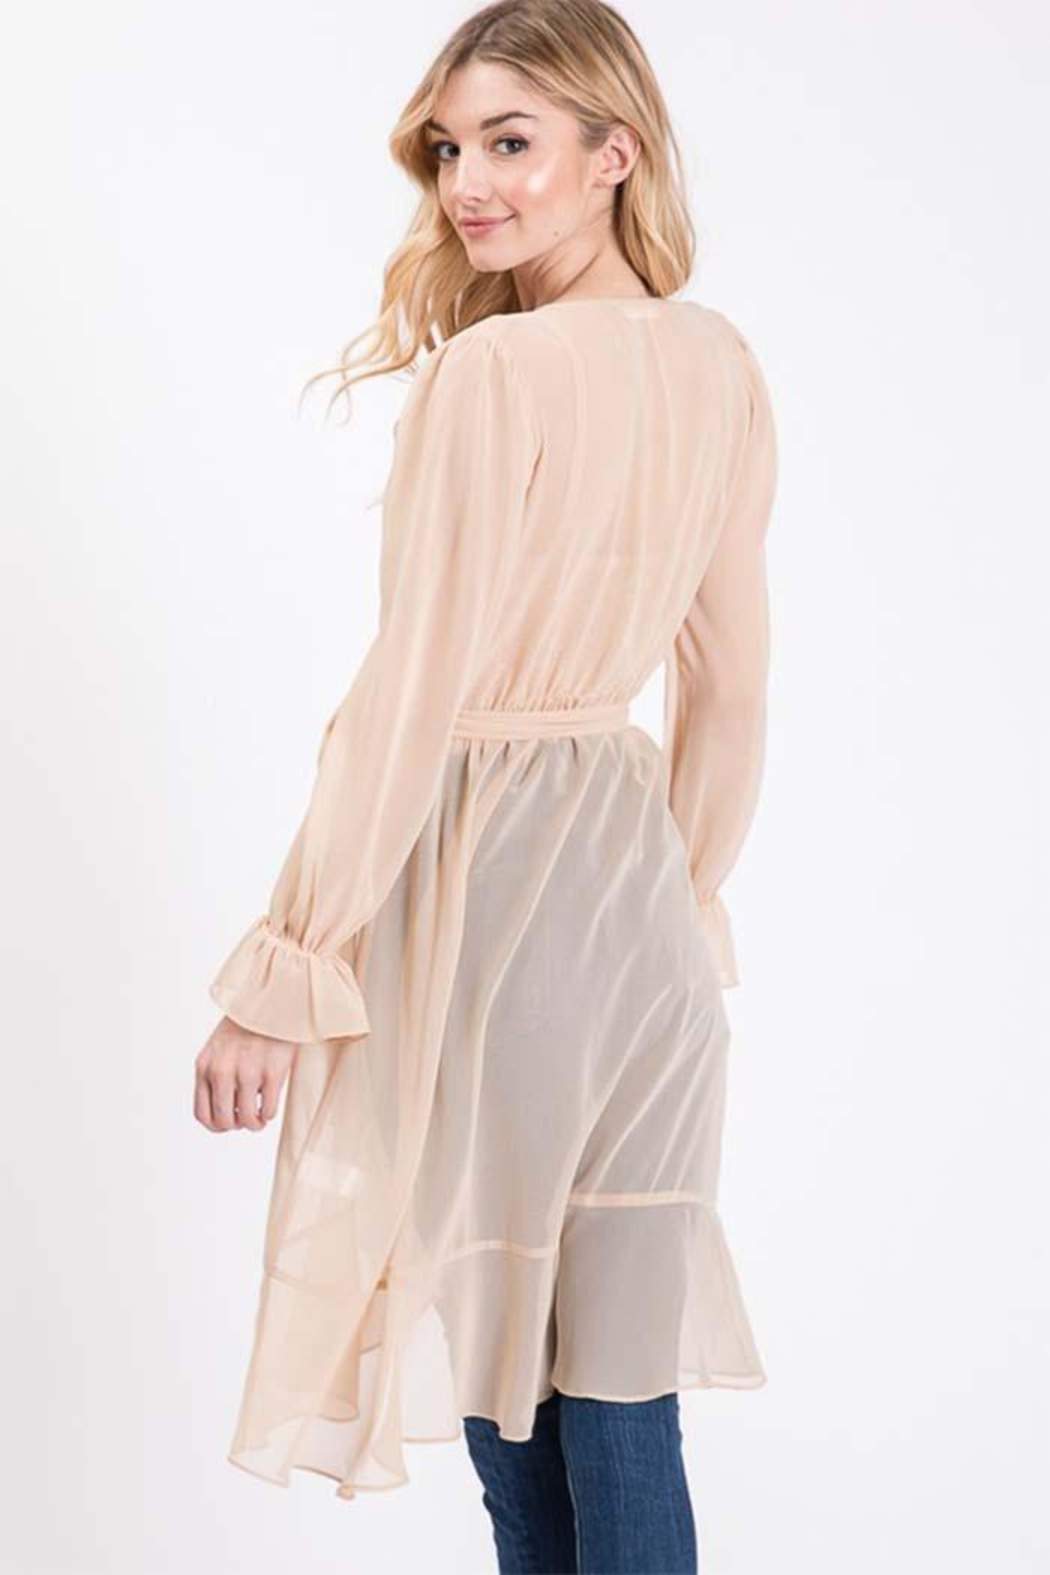 Idem Ditto  Sheer Cardigan Blouse - Front Full Image